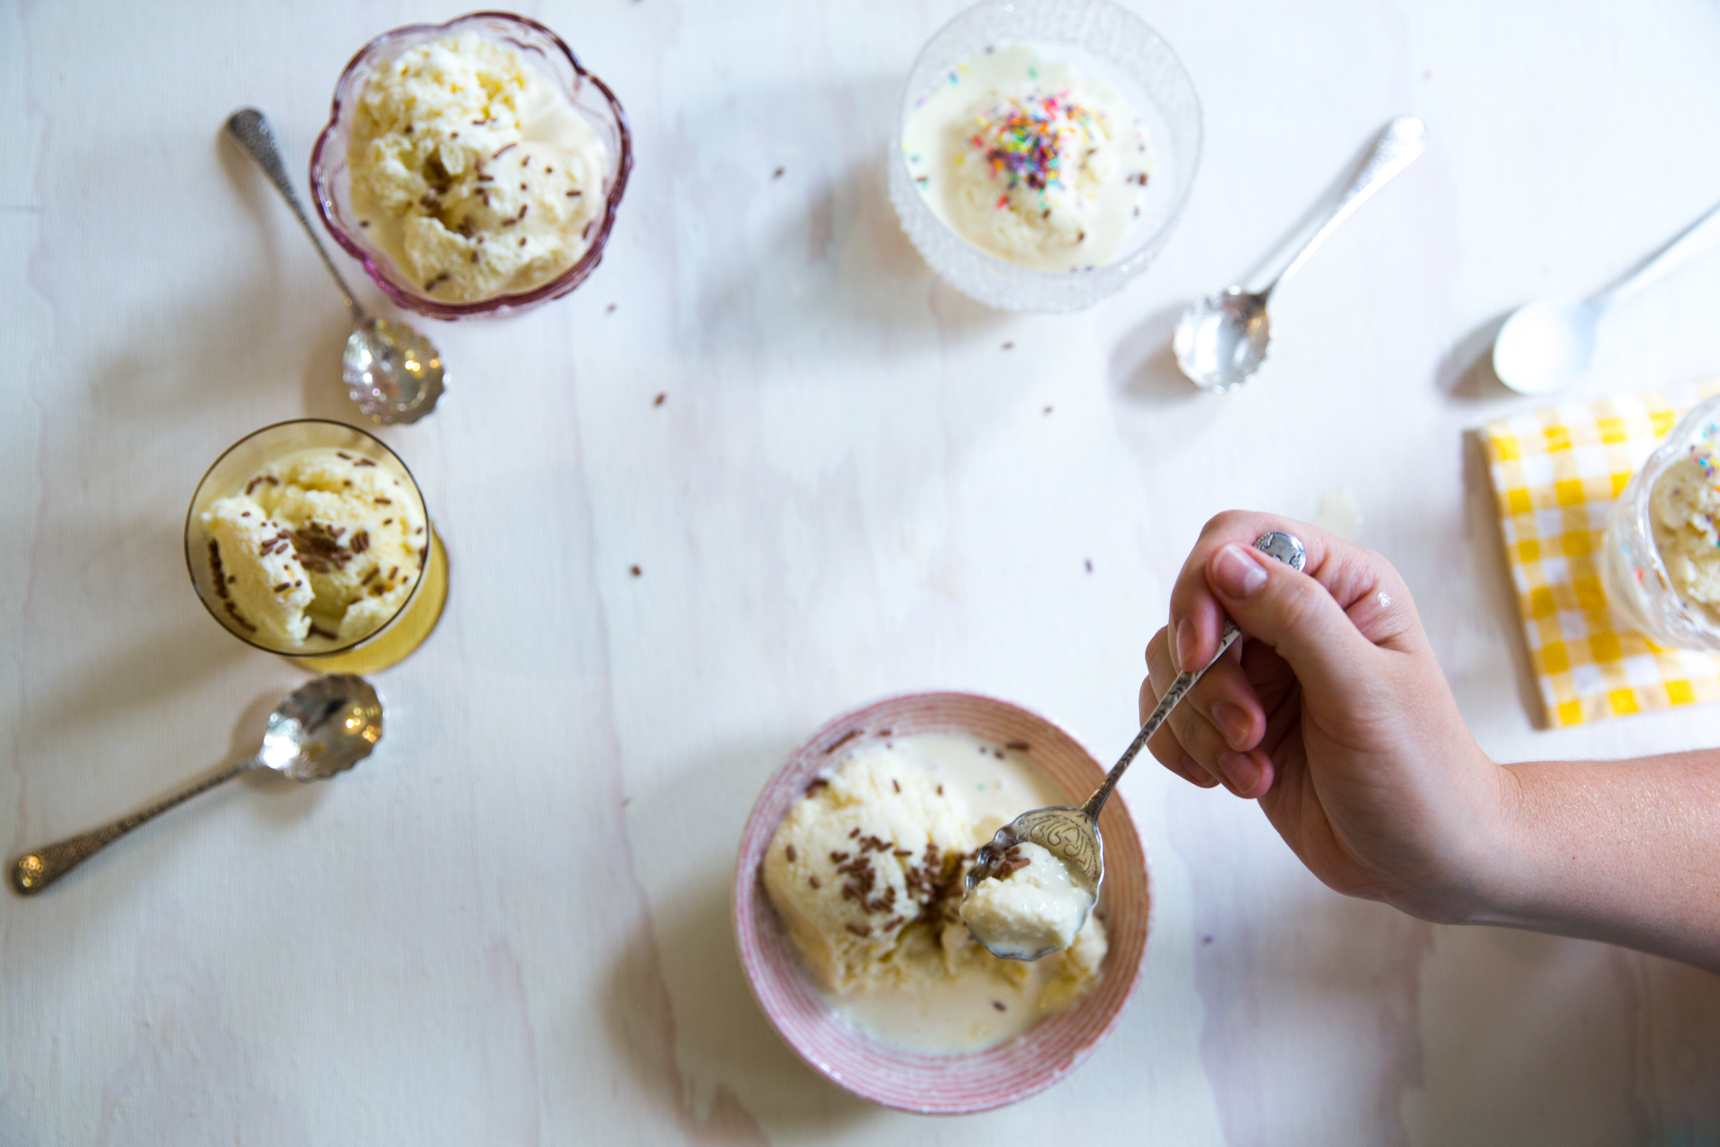 Ice Cream at Home with Pat and Sticks